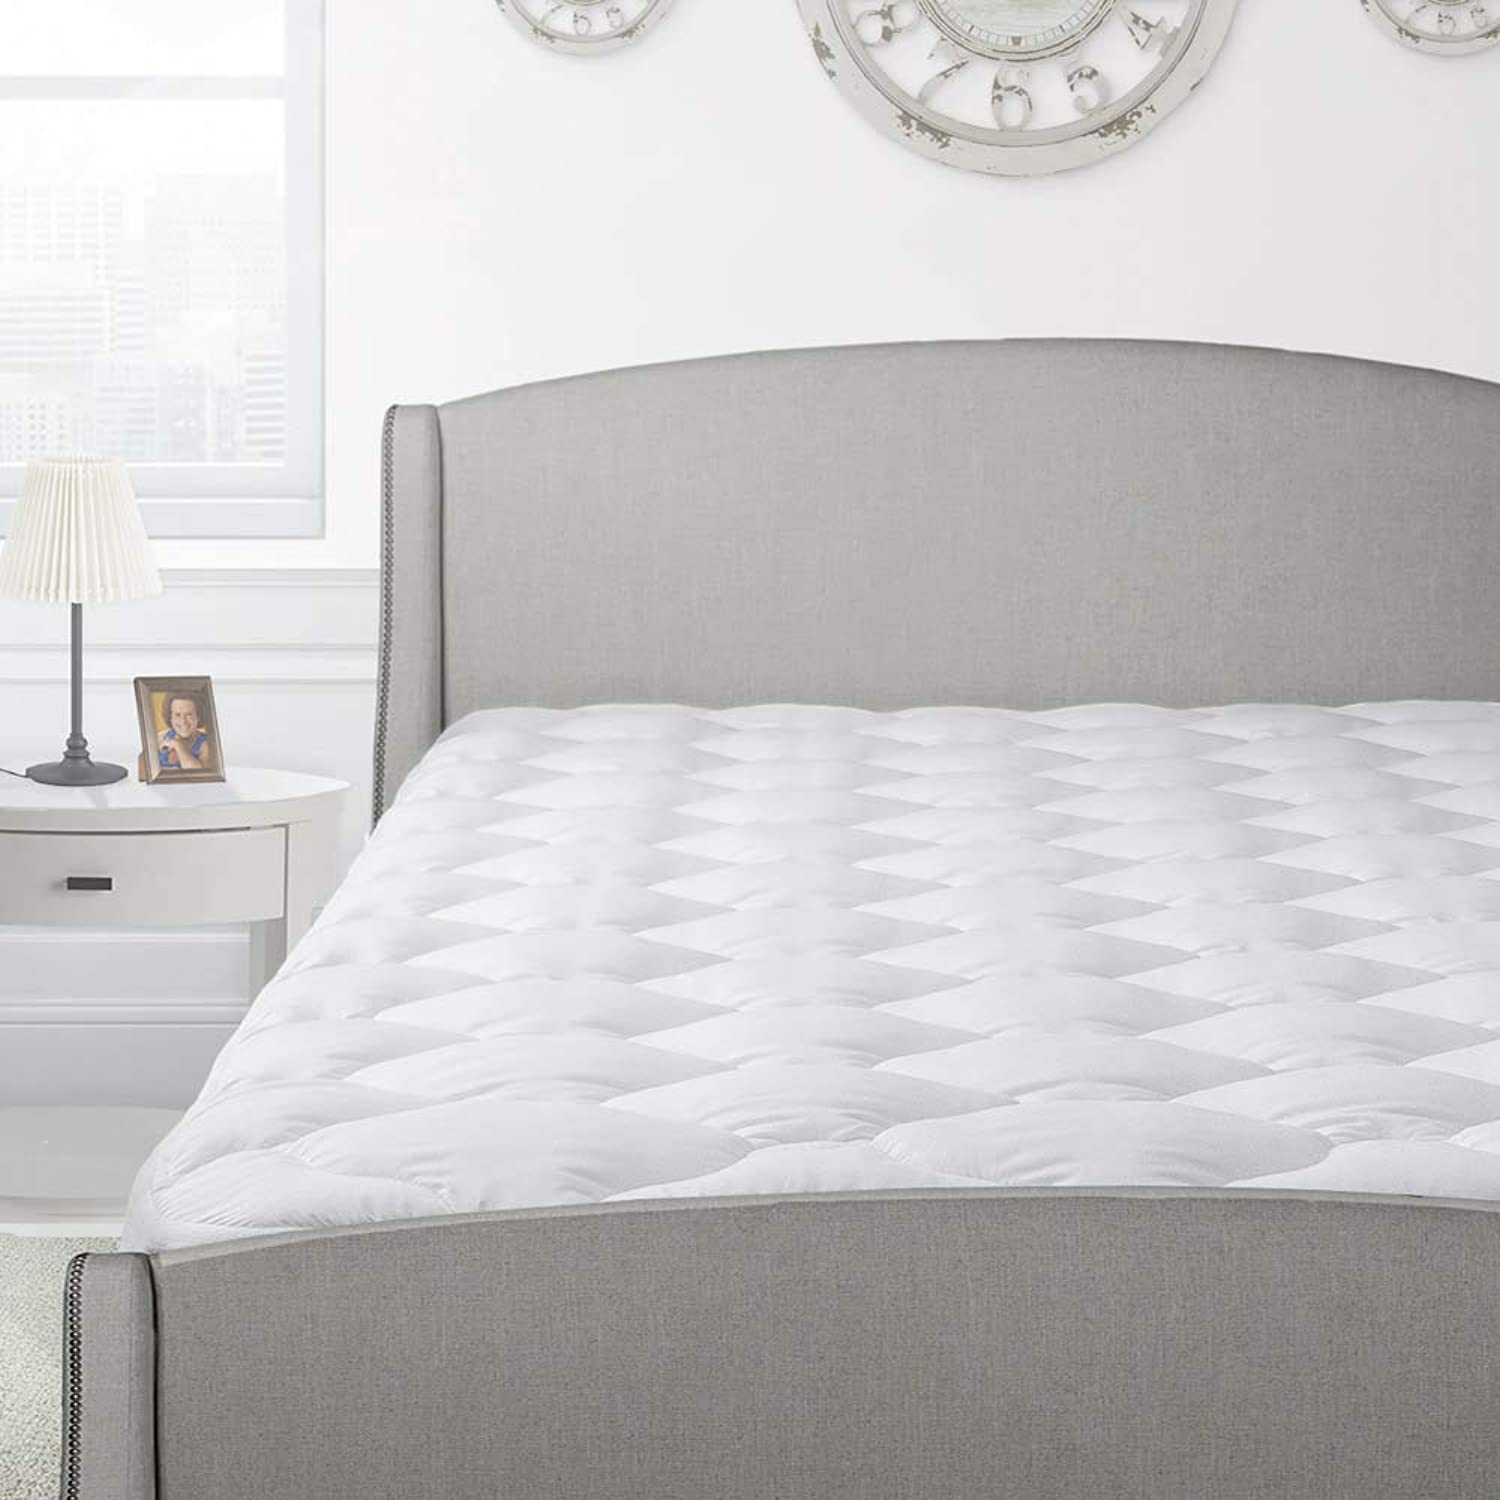 Cardinal & Crest Overfilled Thick Pillow Top Mattress Pad with Fitted Skirt - Luxury Comfort Down Alternative Mattress Predector - Overfilled Mattress Topper Made in The USA - Full Size